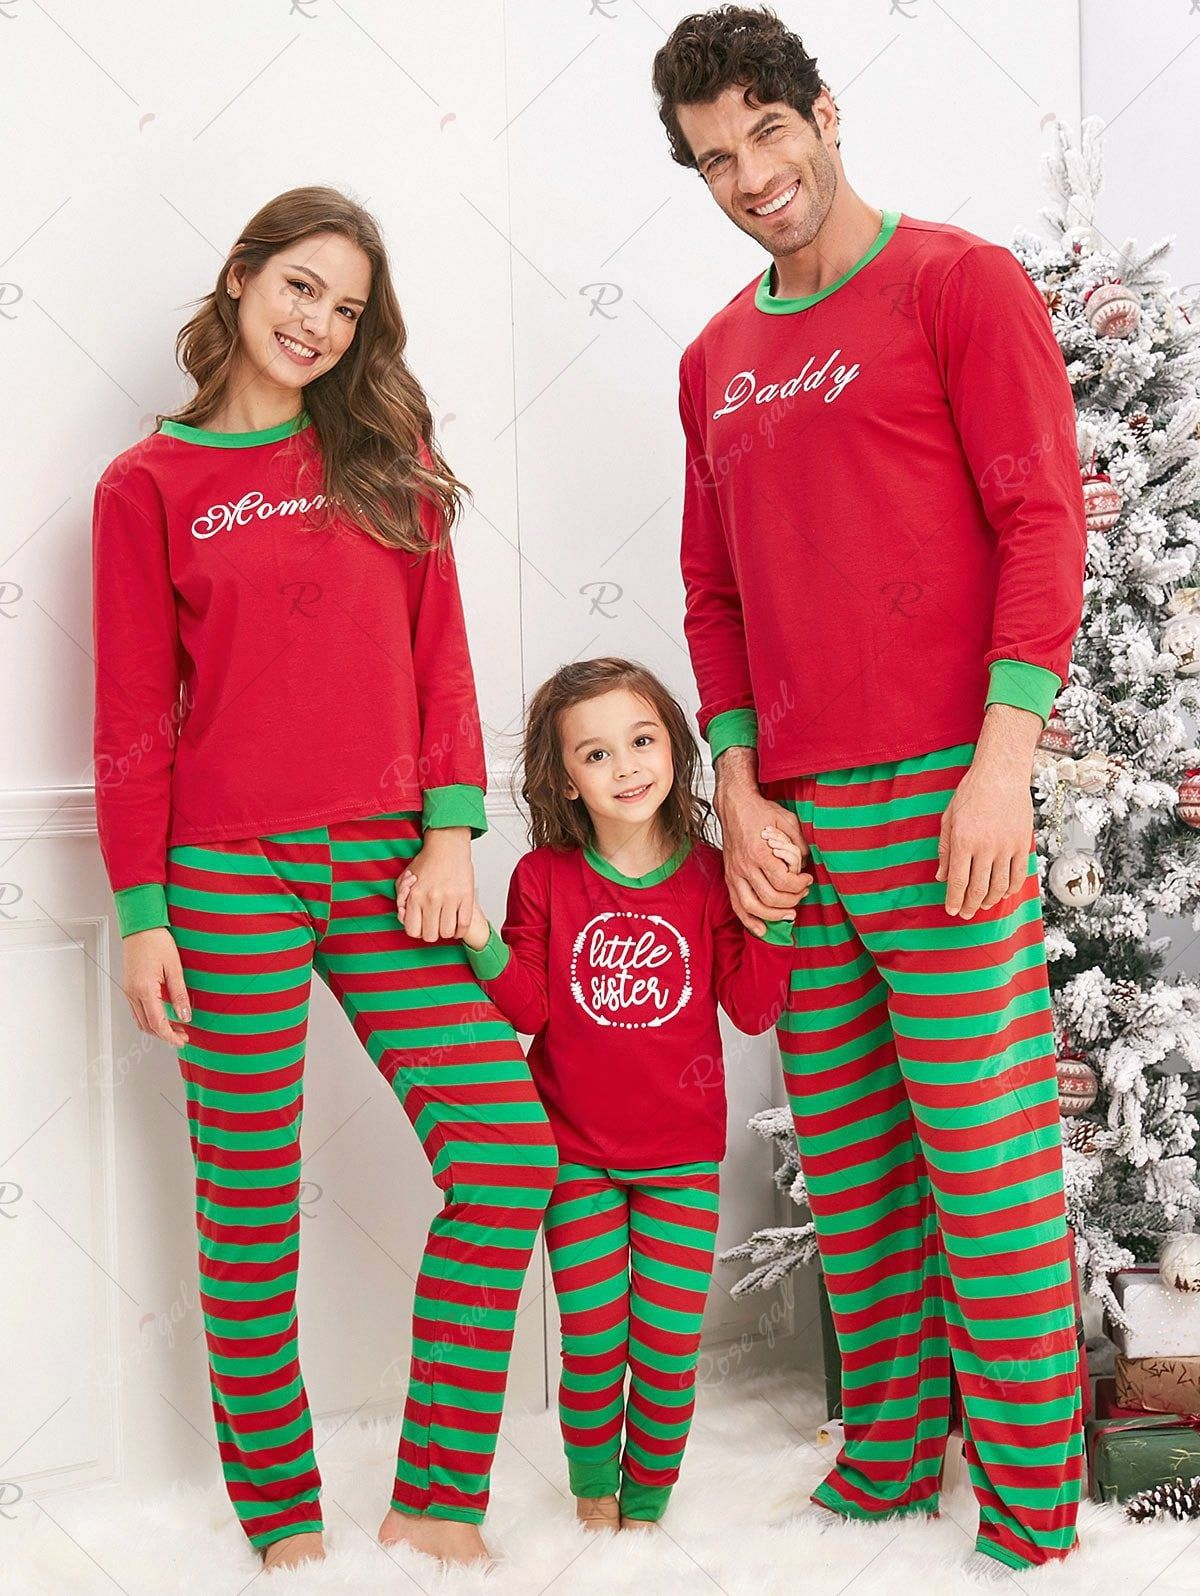 Christmas Striped Letter Printed Matching Family Pajama